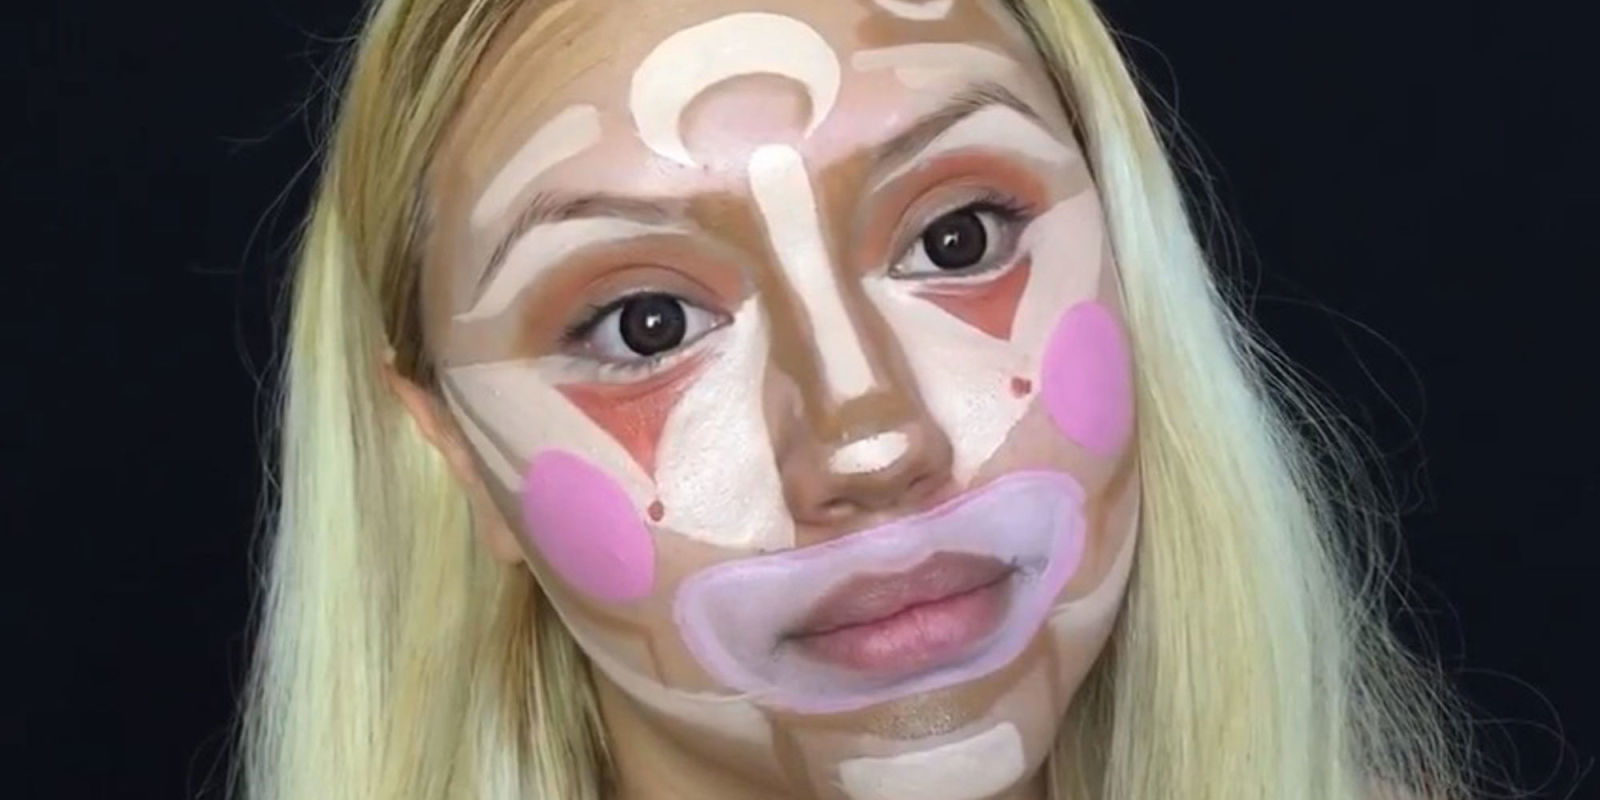 WTF is clown contouring?